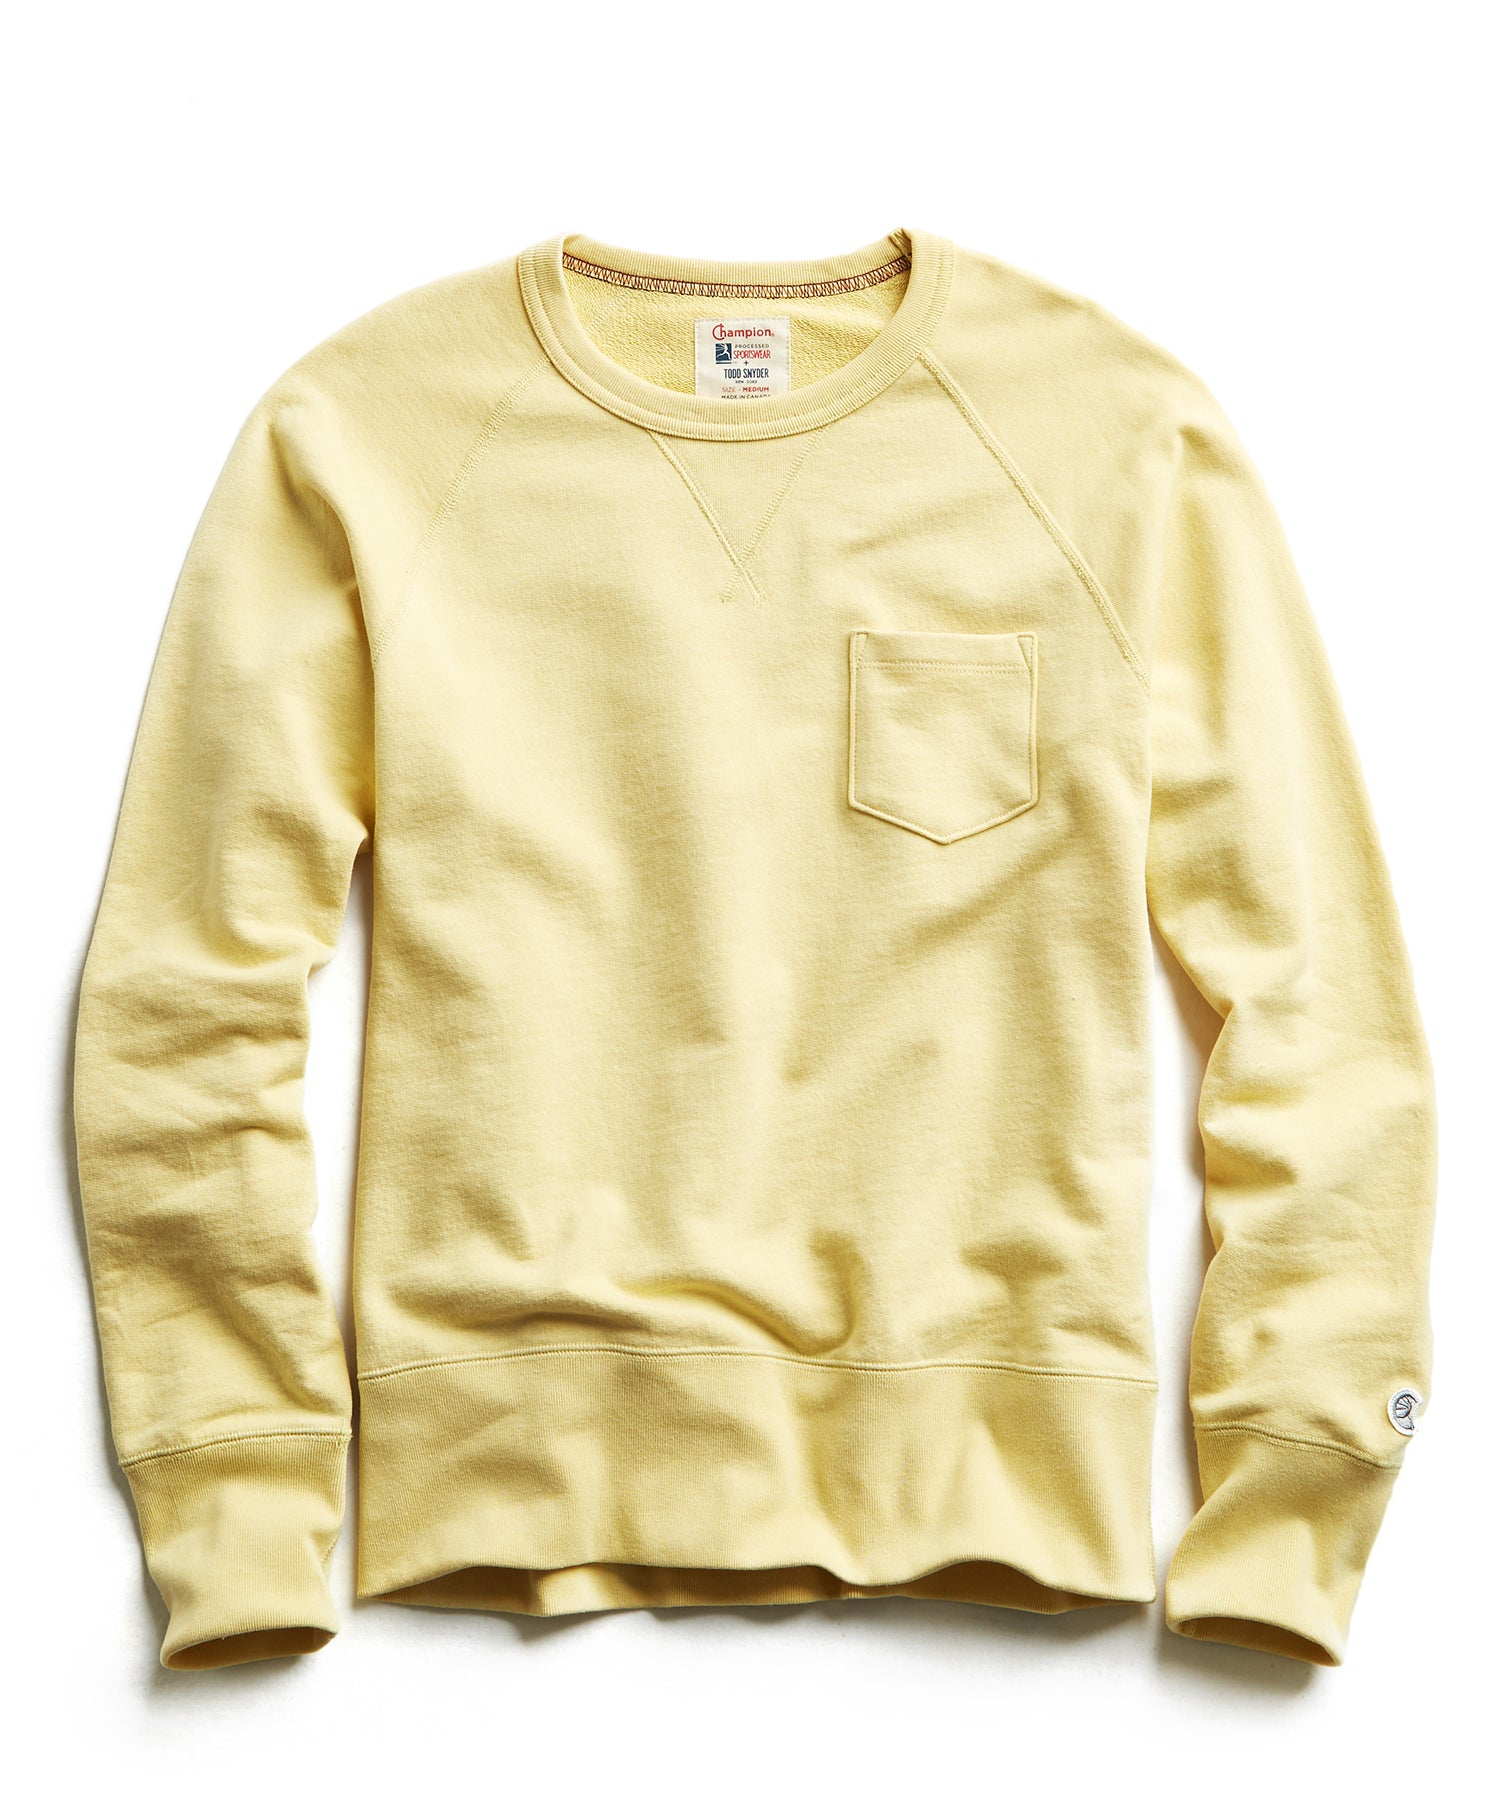 Terry Pocket Sweatshirt in Fresh Lemon